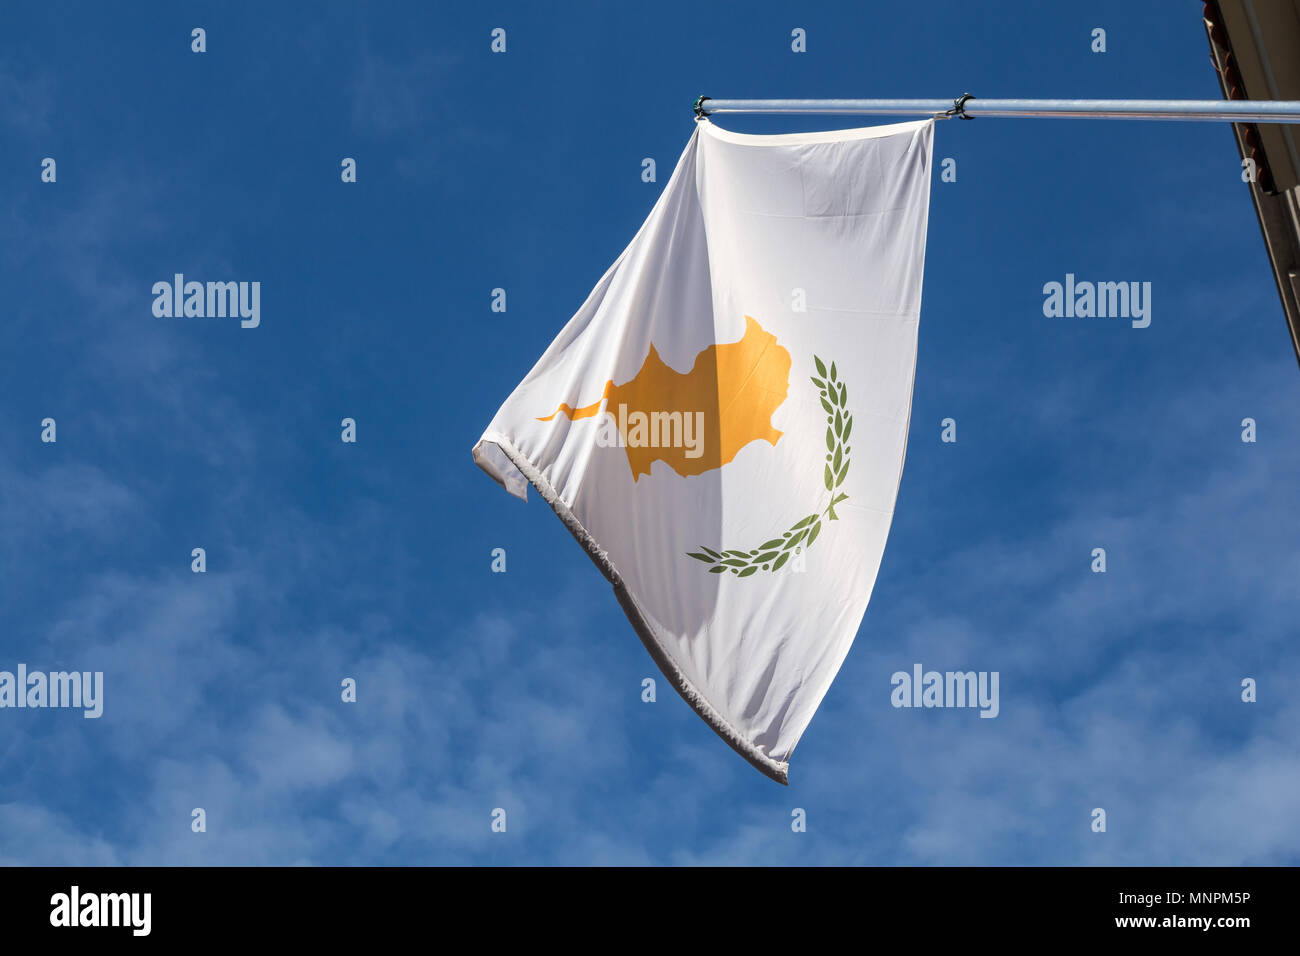 Cyprus flag on the pole hanging from a house in the street. Blue sky with white clouds. - Stock Image